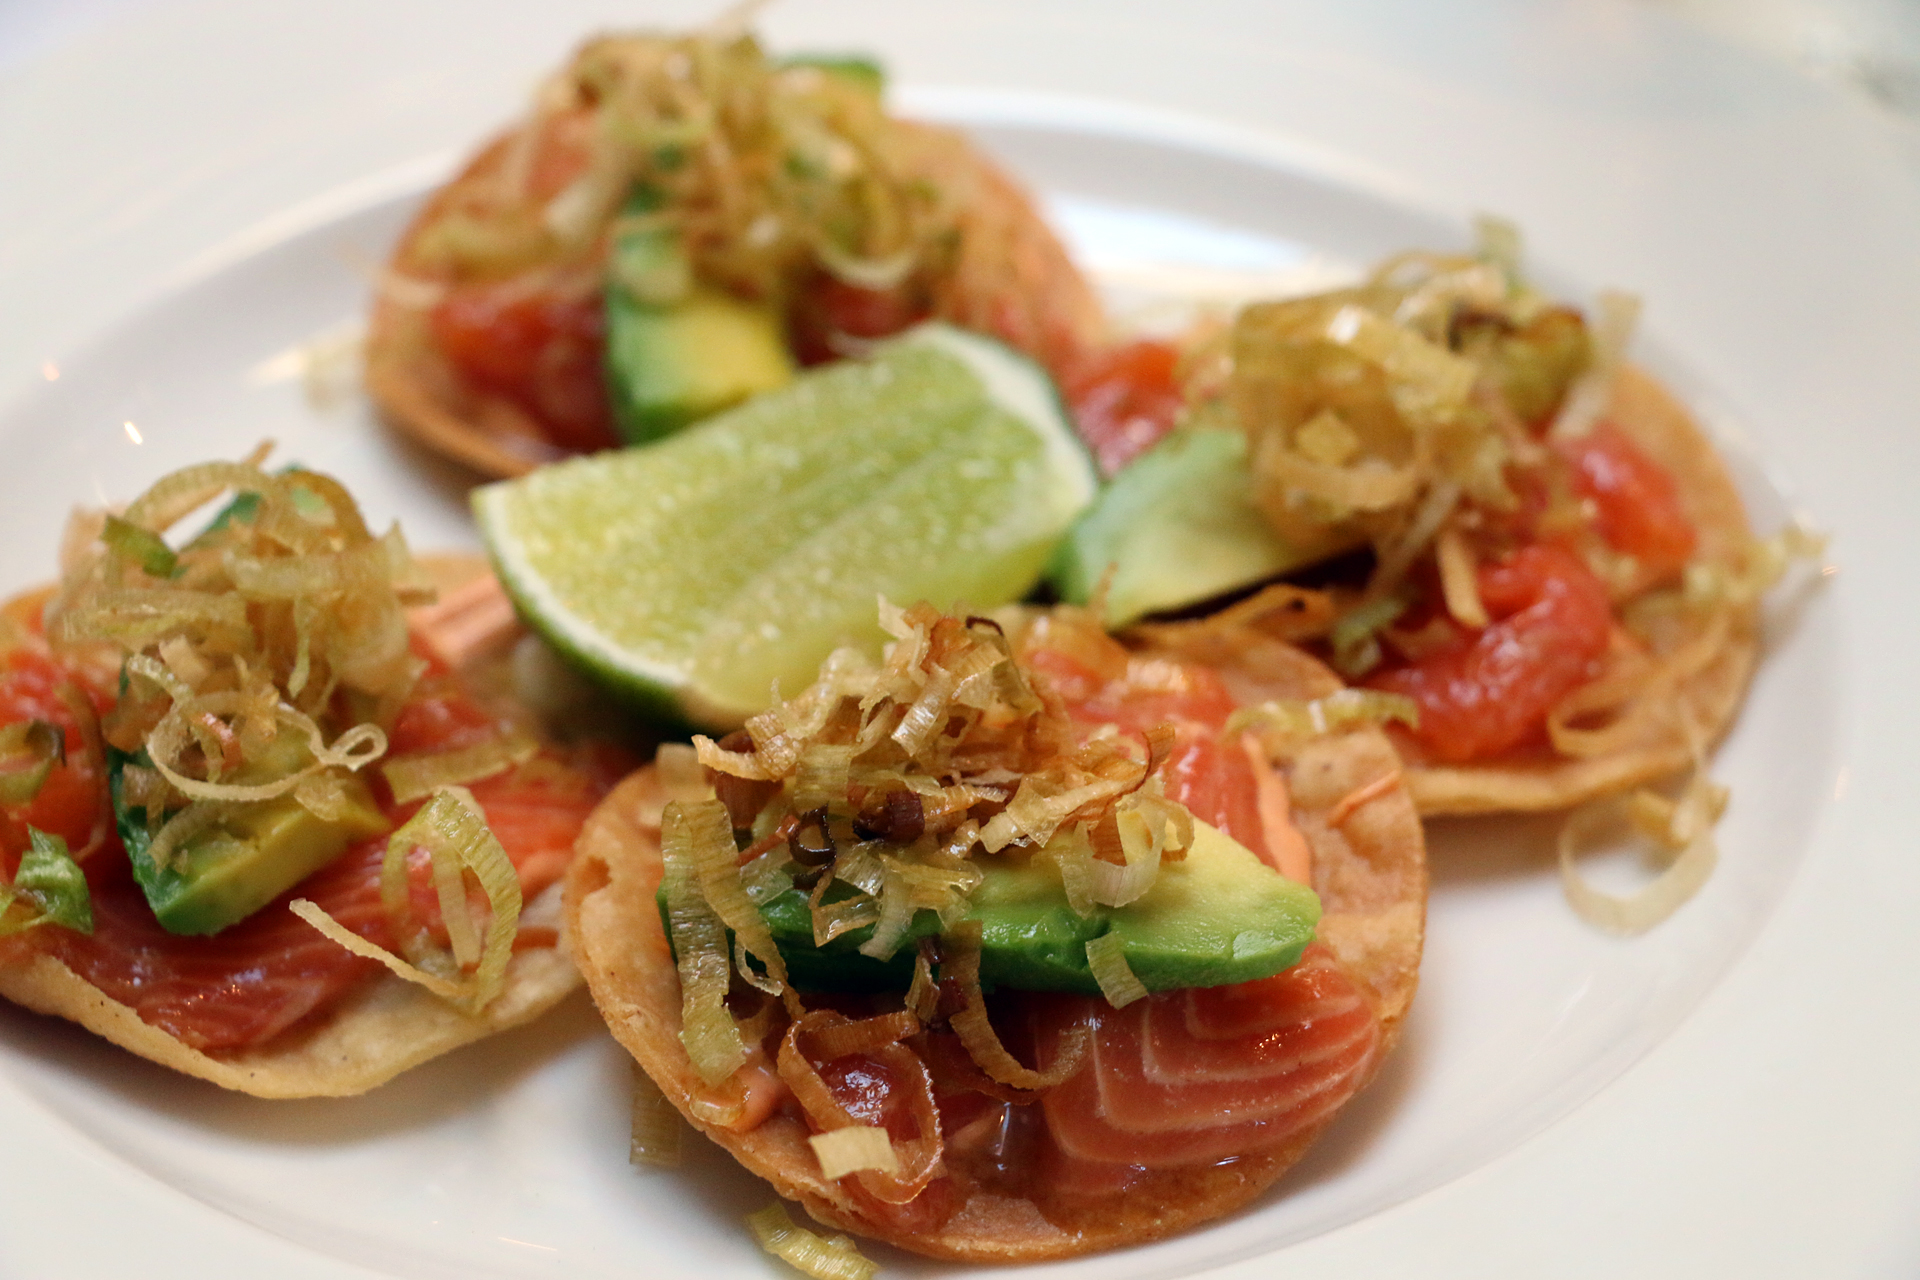 Trout tostadas with chipotle sauce and fried leeks.